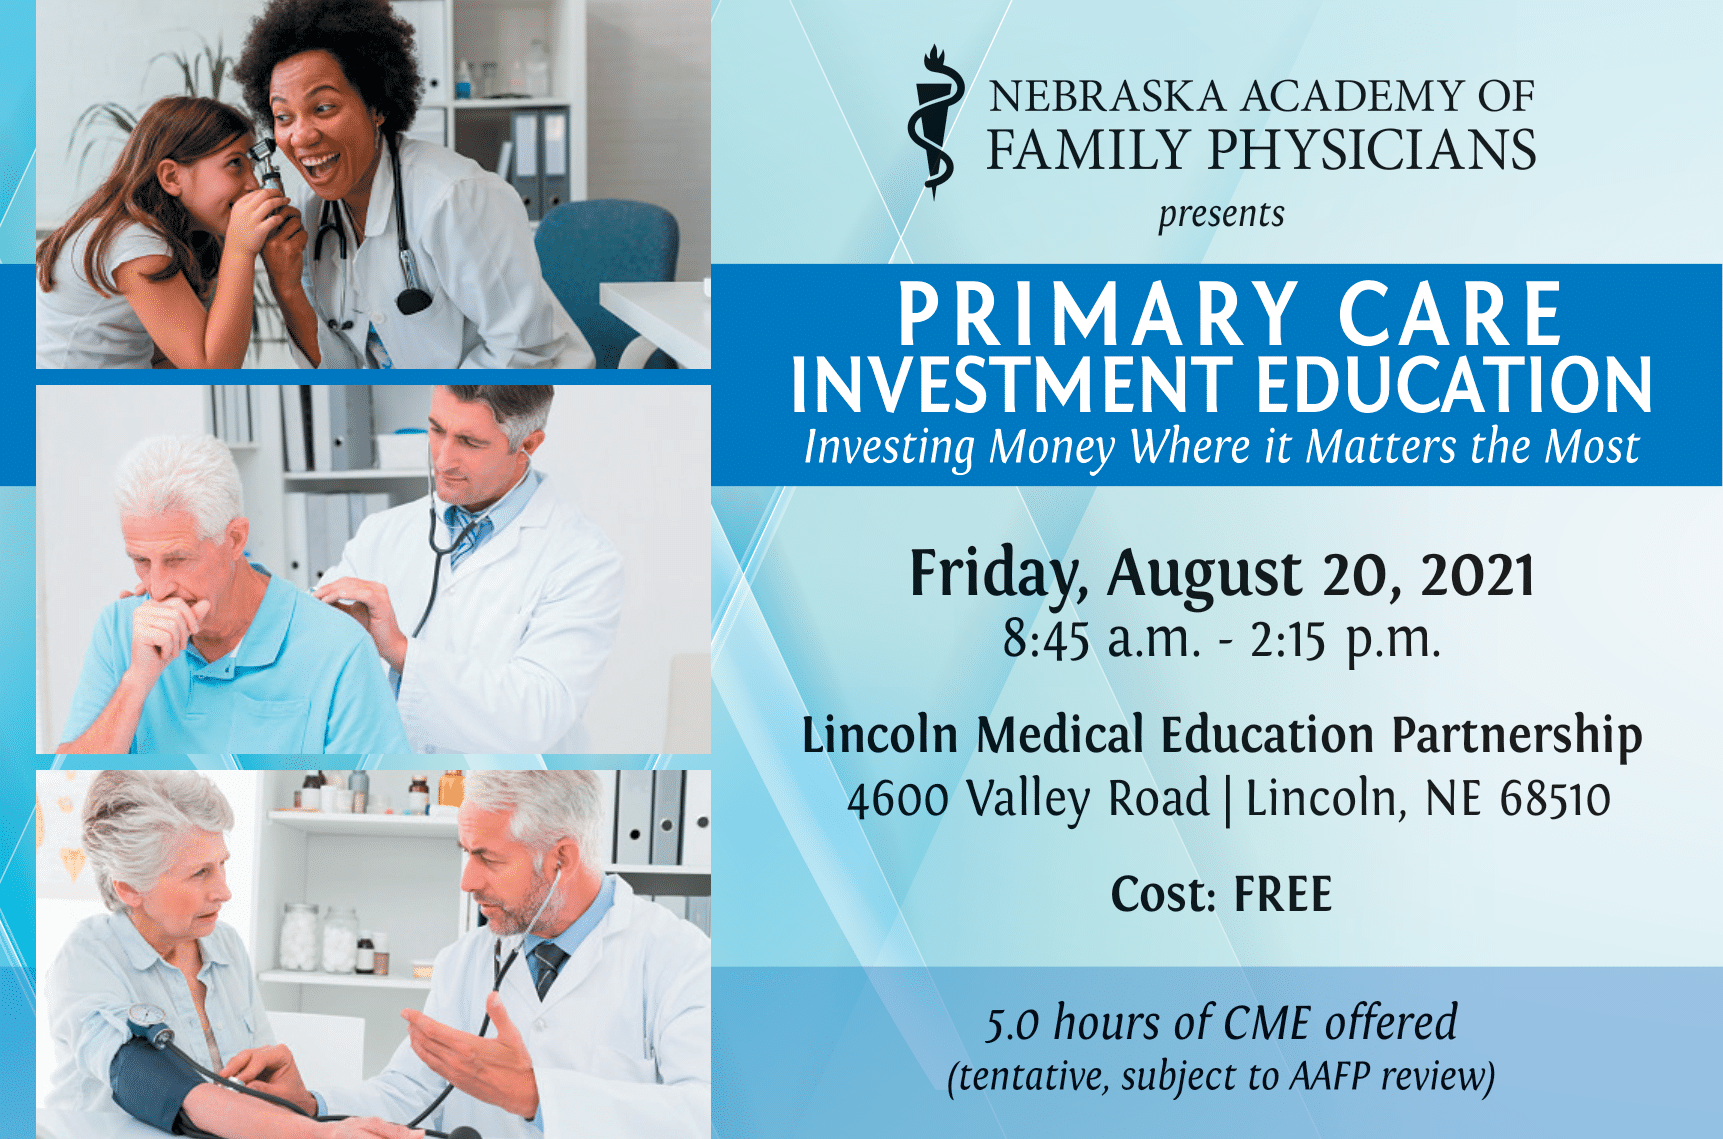 Primary Care Investment: Investing Money Where it Matters the Most